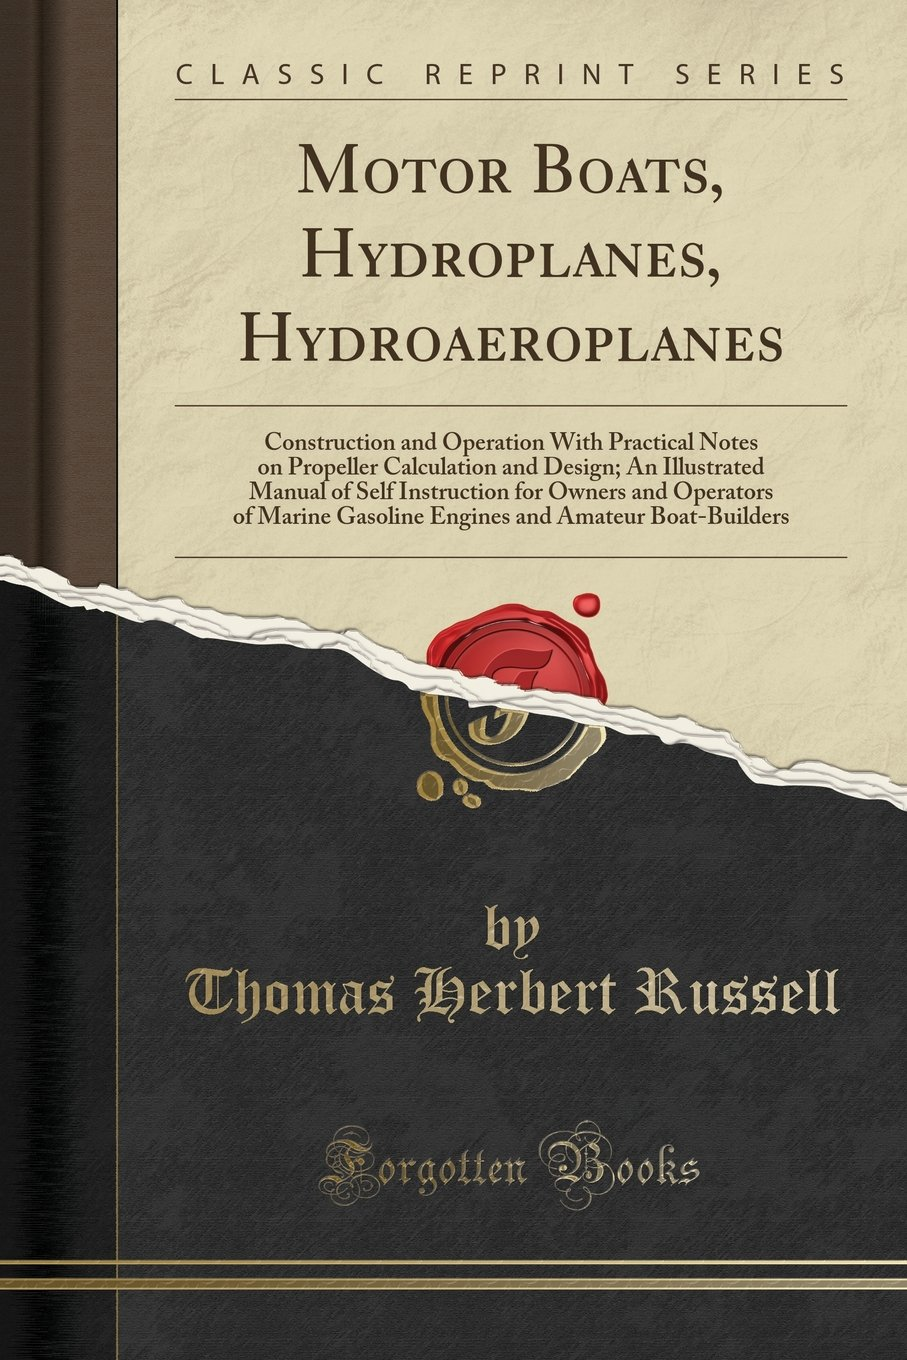 Motor Boats, Hydroplanes, Hydroaeroplanes: Construction and Operation With Practical Notes on Propeller Calculation and Design; An Illustrated Manual Gasoline Engines and Amateur Boat-Builders